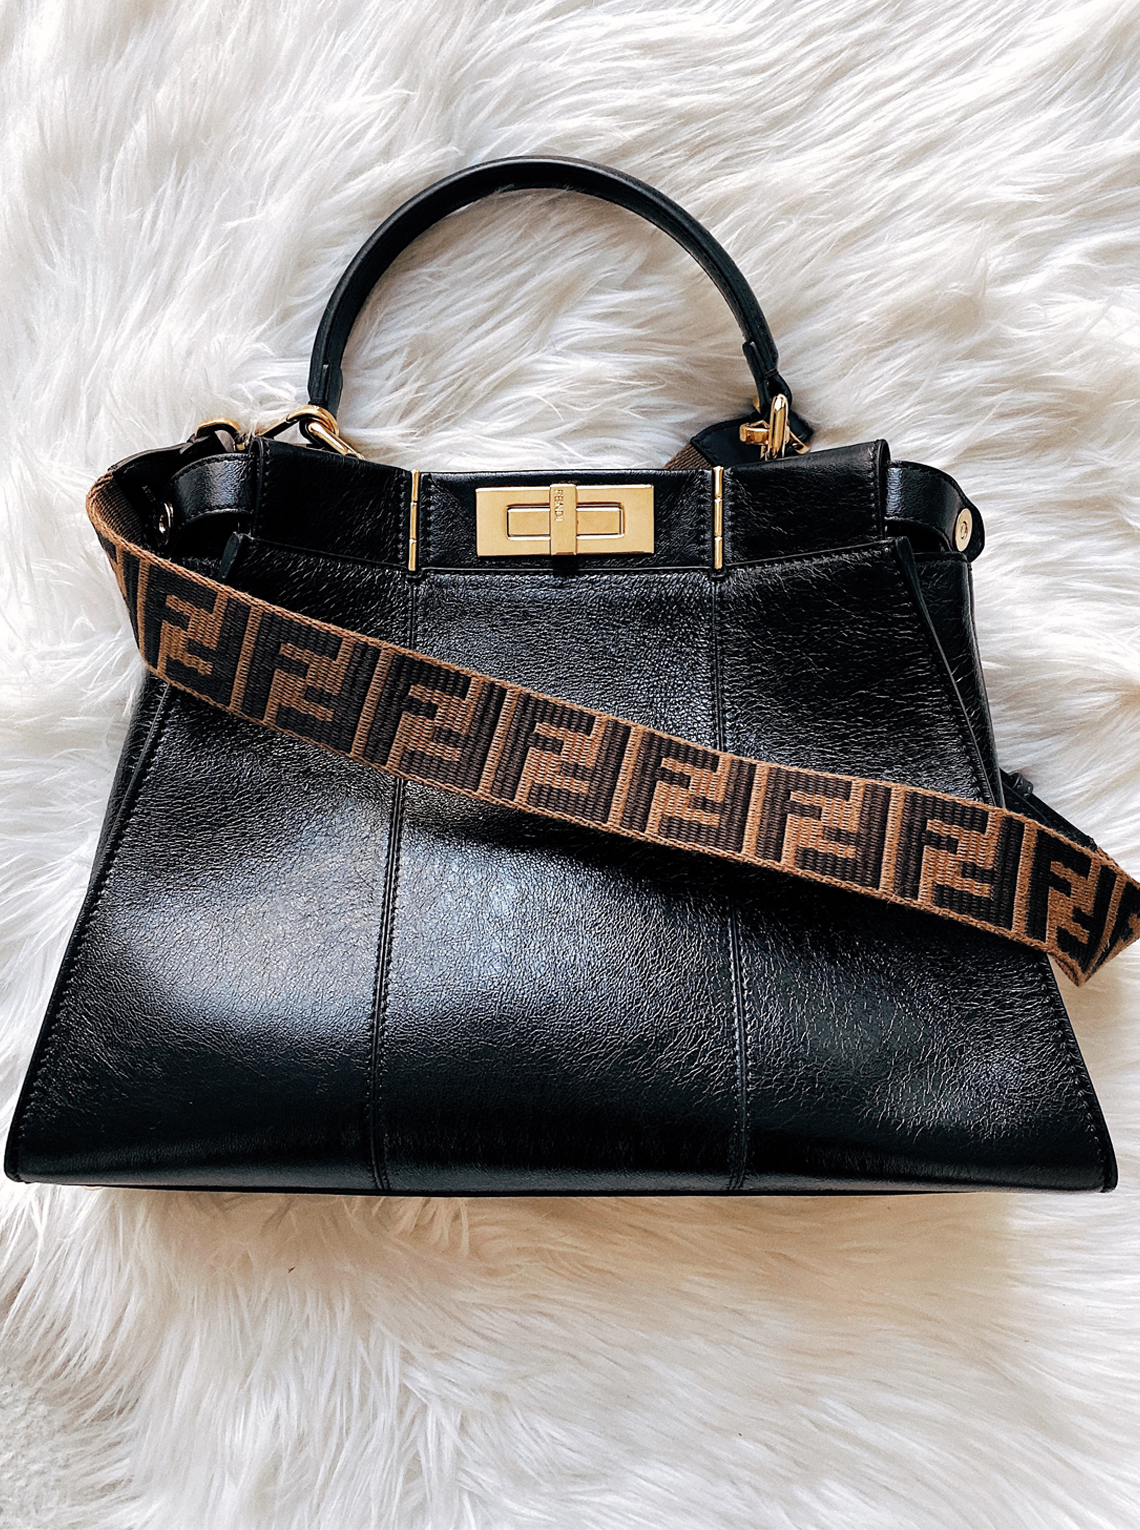 Fendi Peekaboo Iconic Medium Handbag